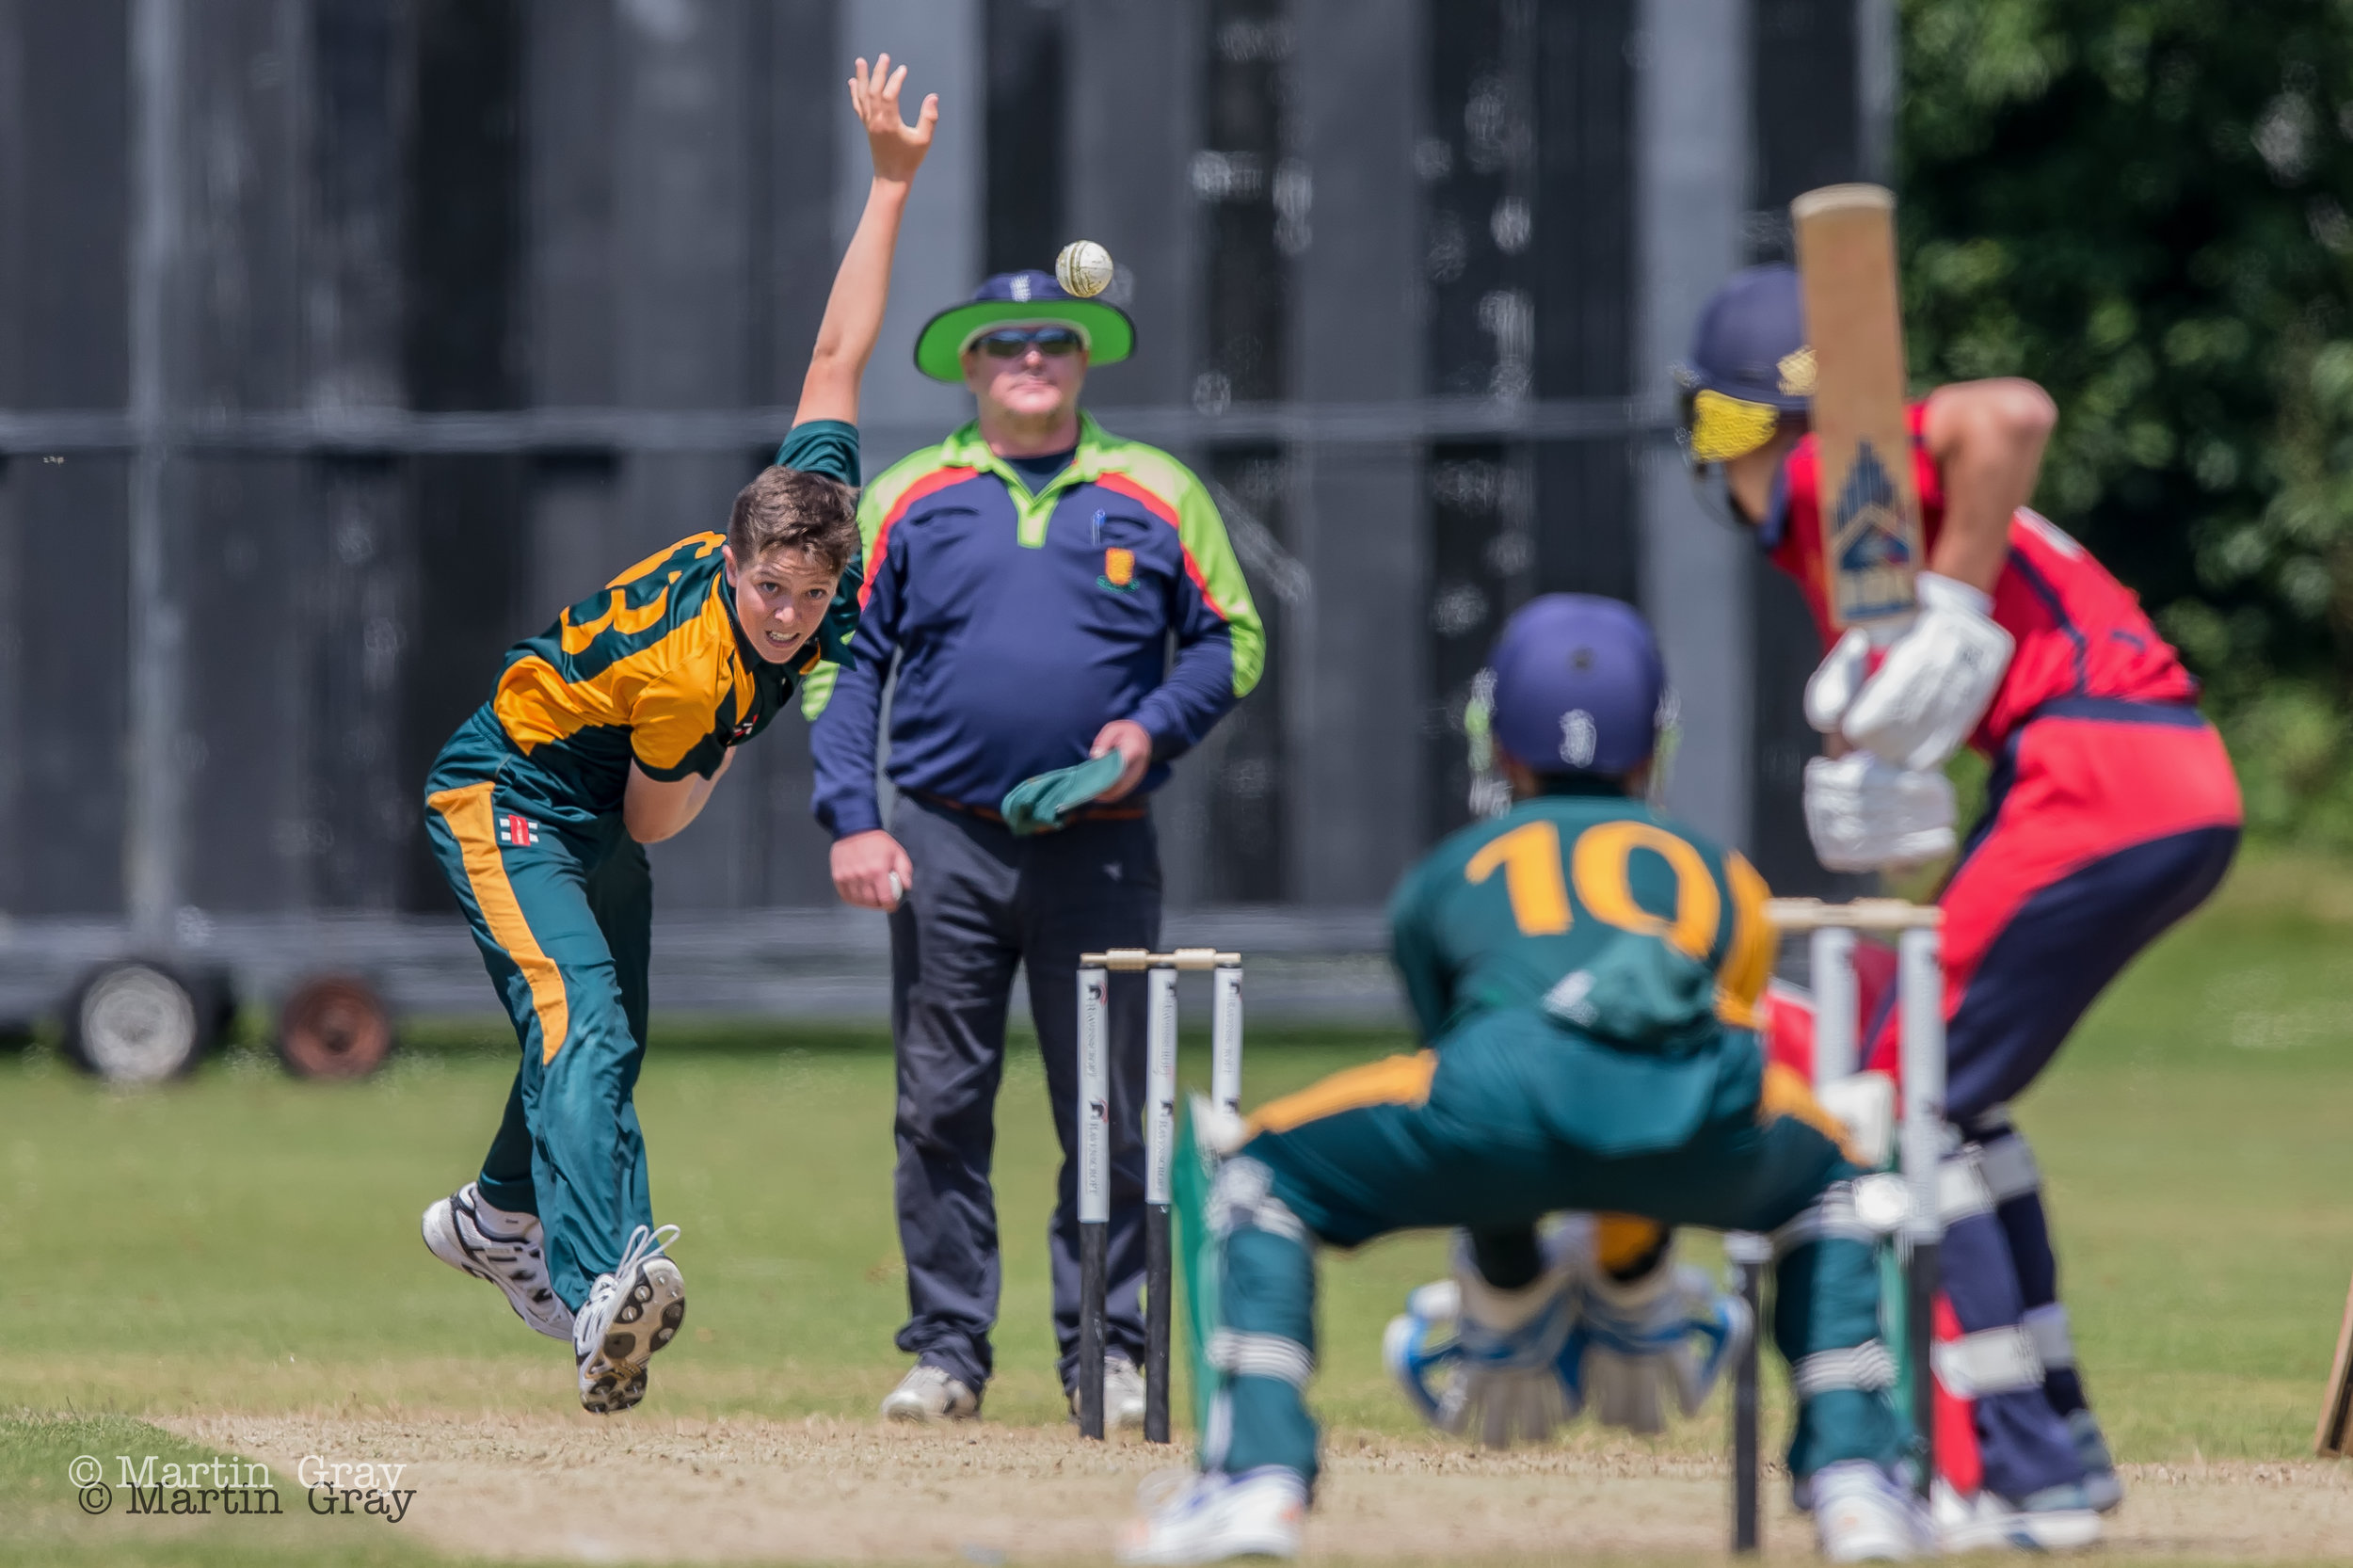 Cricket action from 6th July - Guernsey v Jersey U15 Inter-Insular